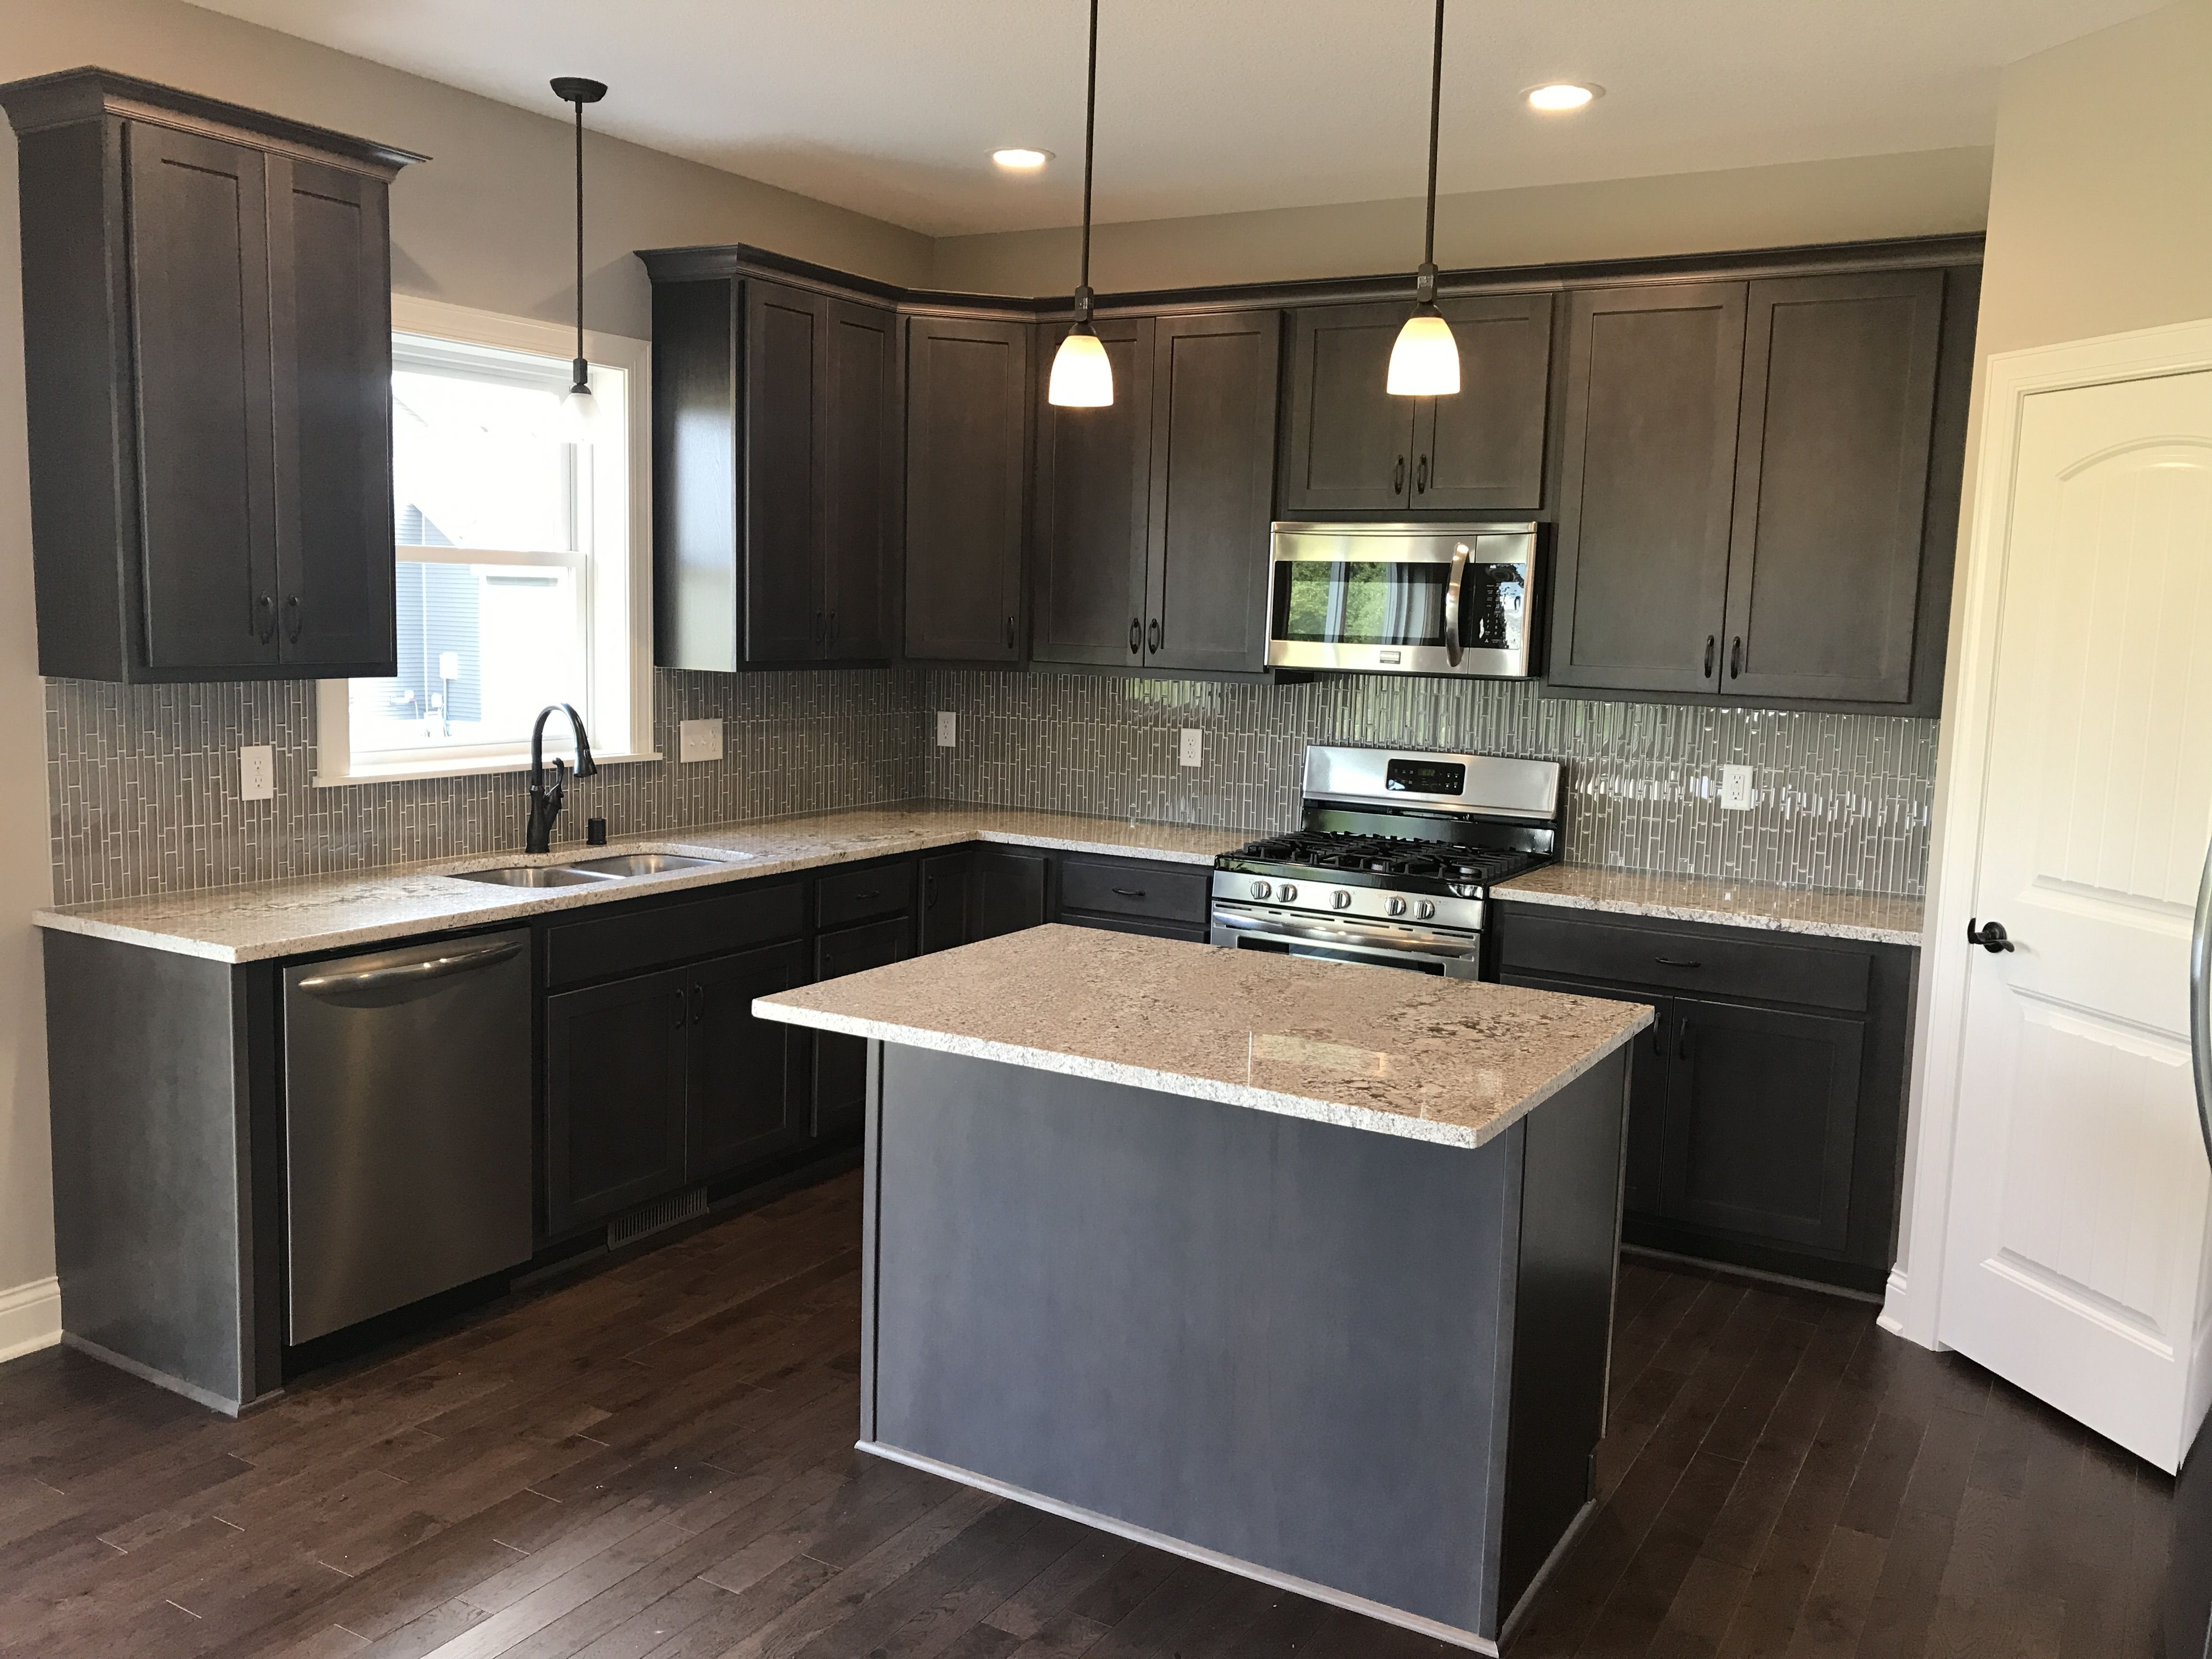 Apple Valley Kitchen Cabinets Copper Accessories Legacy Maple Wood Specie Charcoal Stain Color